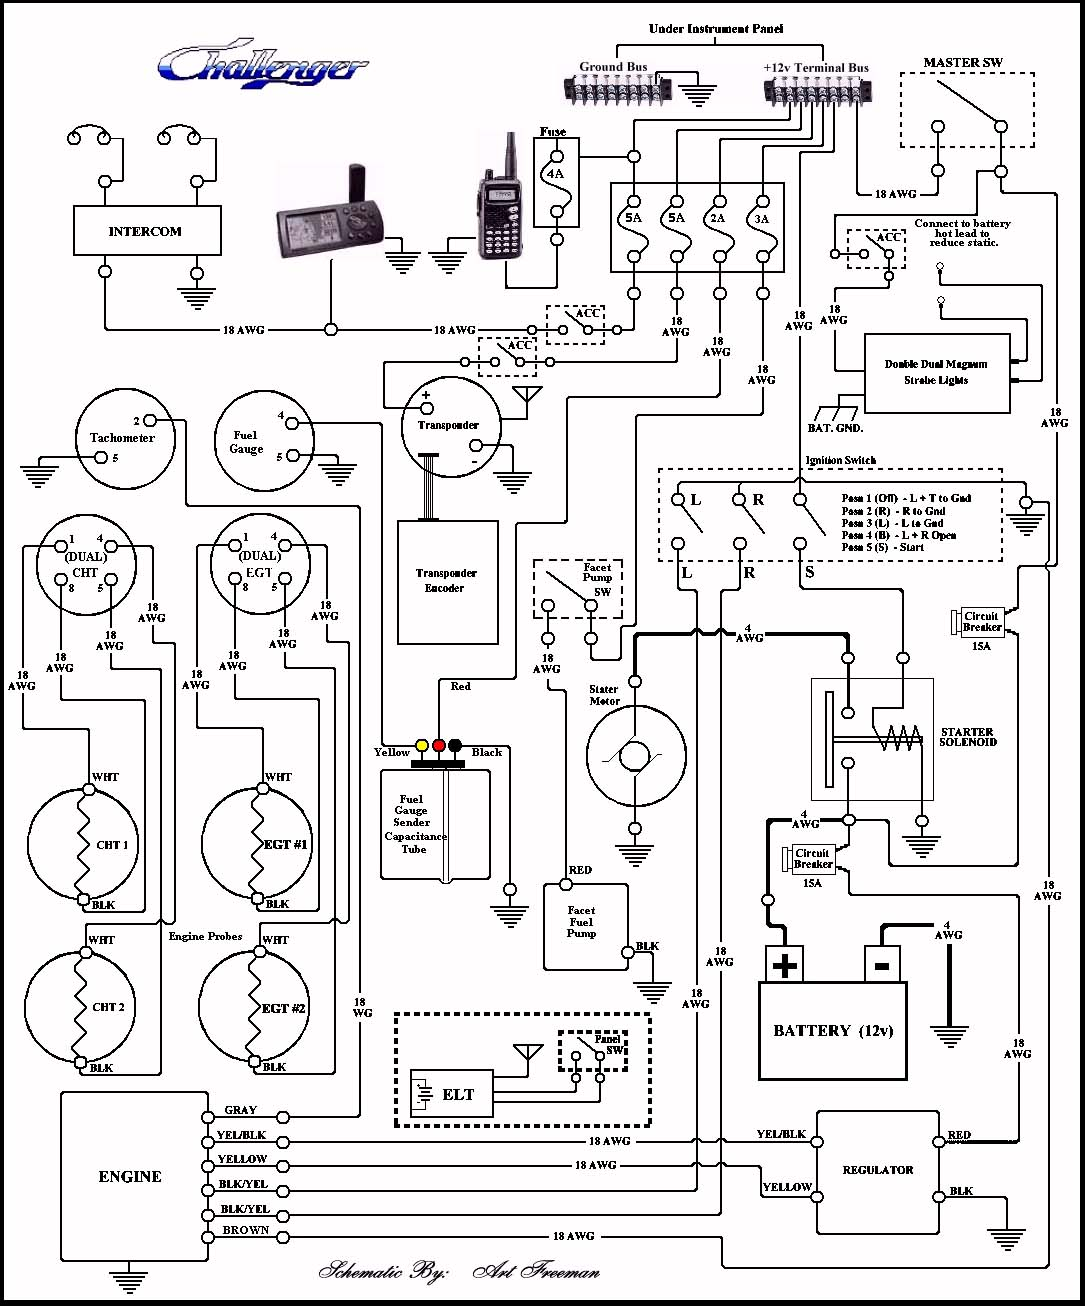 wiring diagram for simple light switch with Planewiring2 on Solar Panelac Mains Relay Changeover in addition Mv Wiring Diagram likewise UNPh32 6 besides 1976 Honda Cb125s Electrical Wiring Diagram as well Laundry Electrical Wiring.